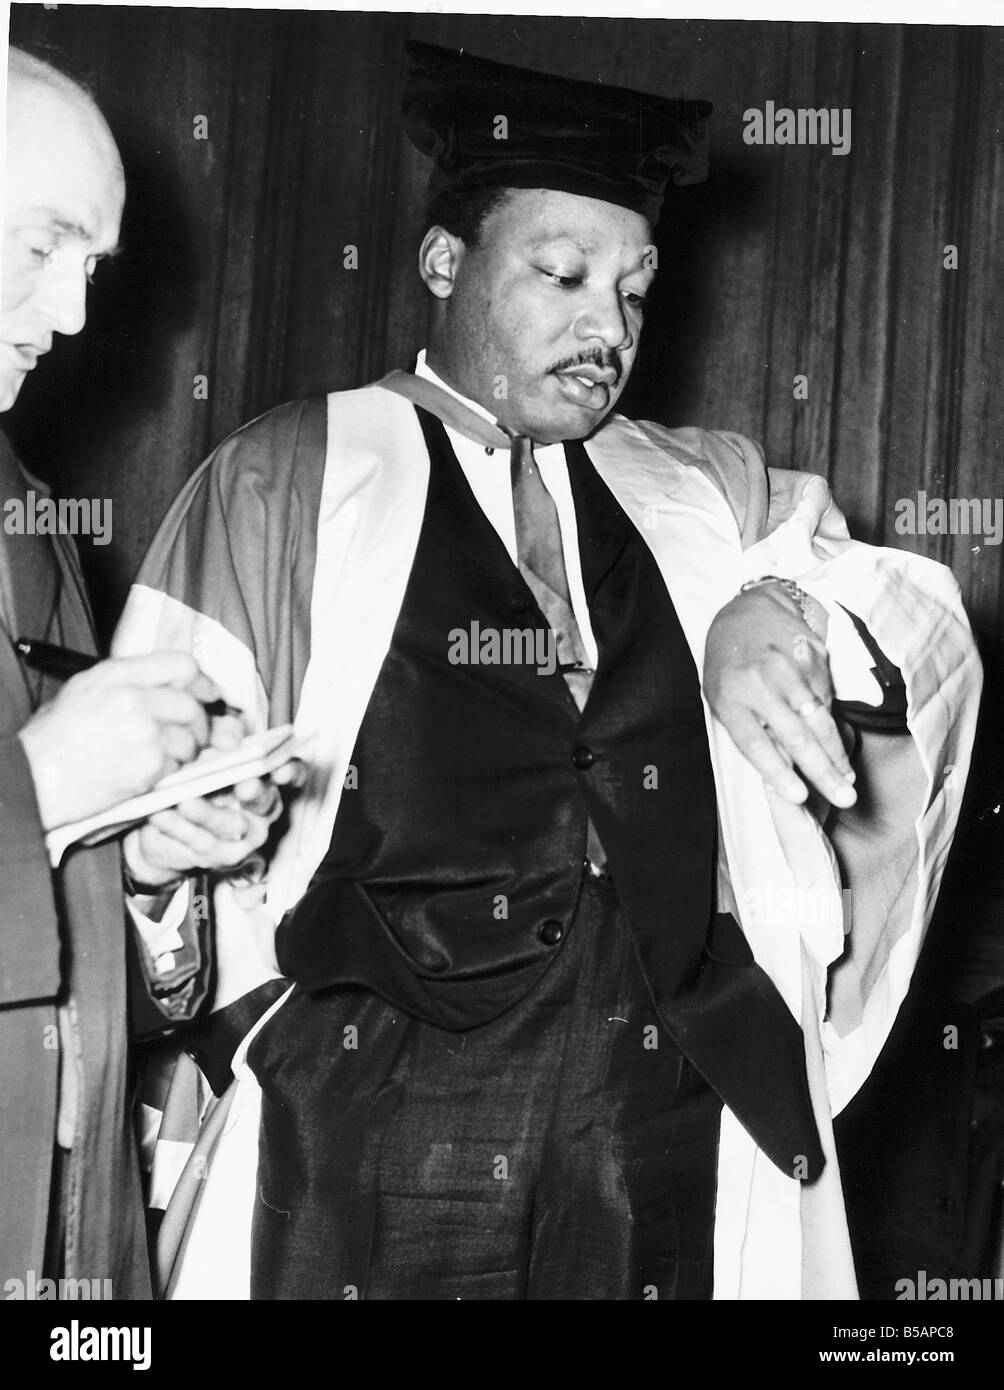 Martin Luther King American Civil Rights leader getting an Honoraray Degree of Doctor of law - Stock Image